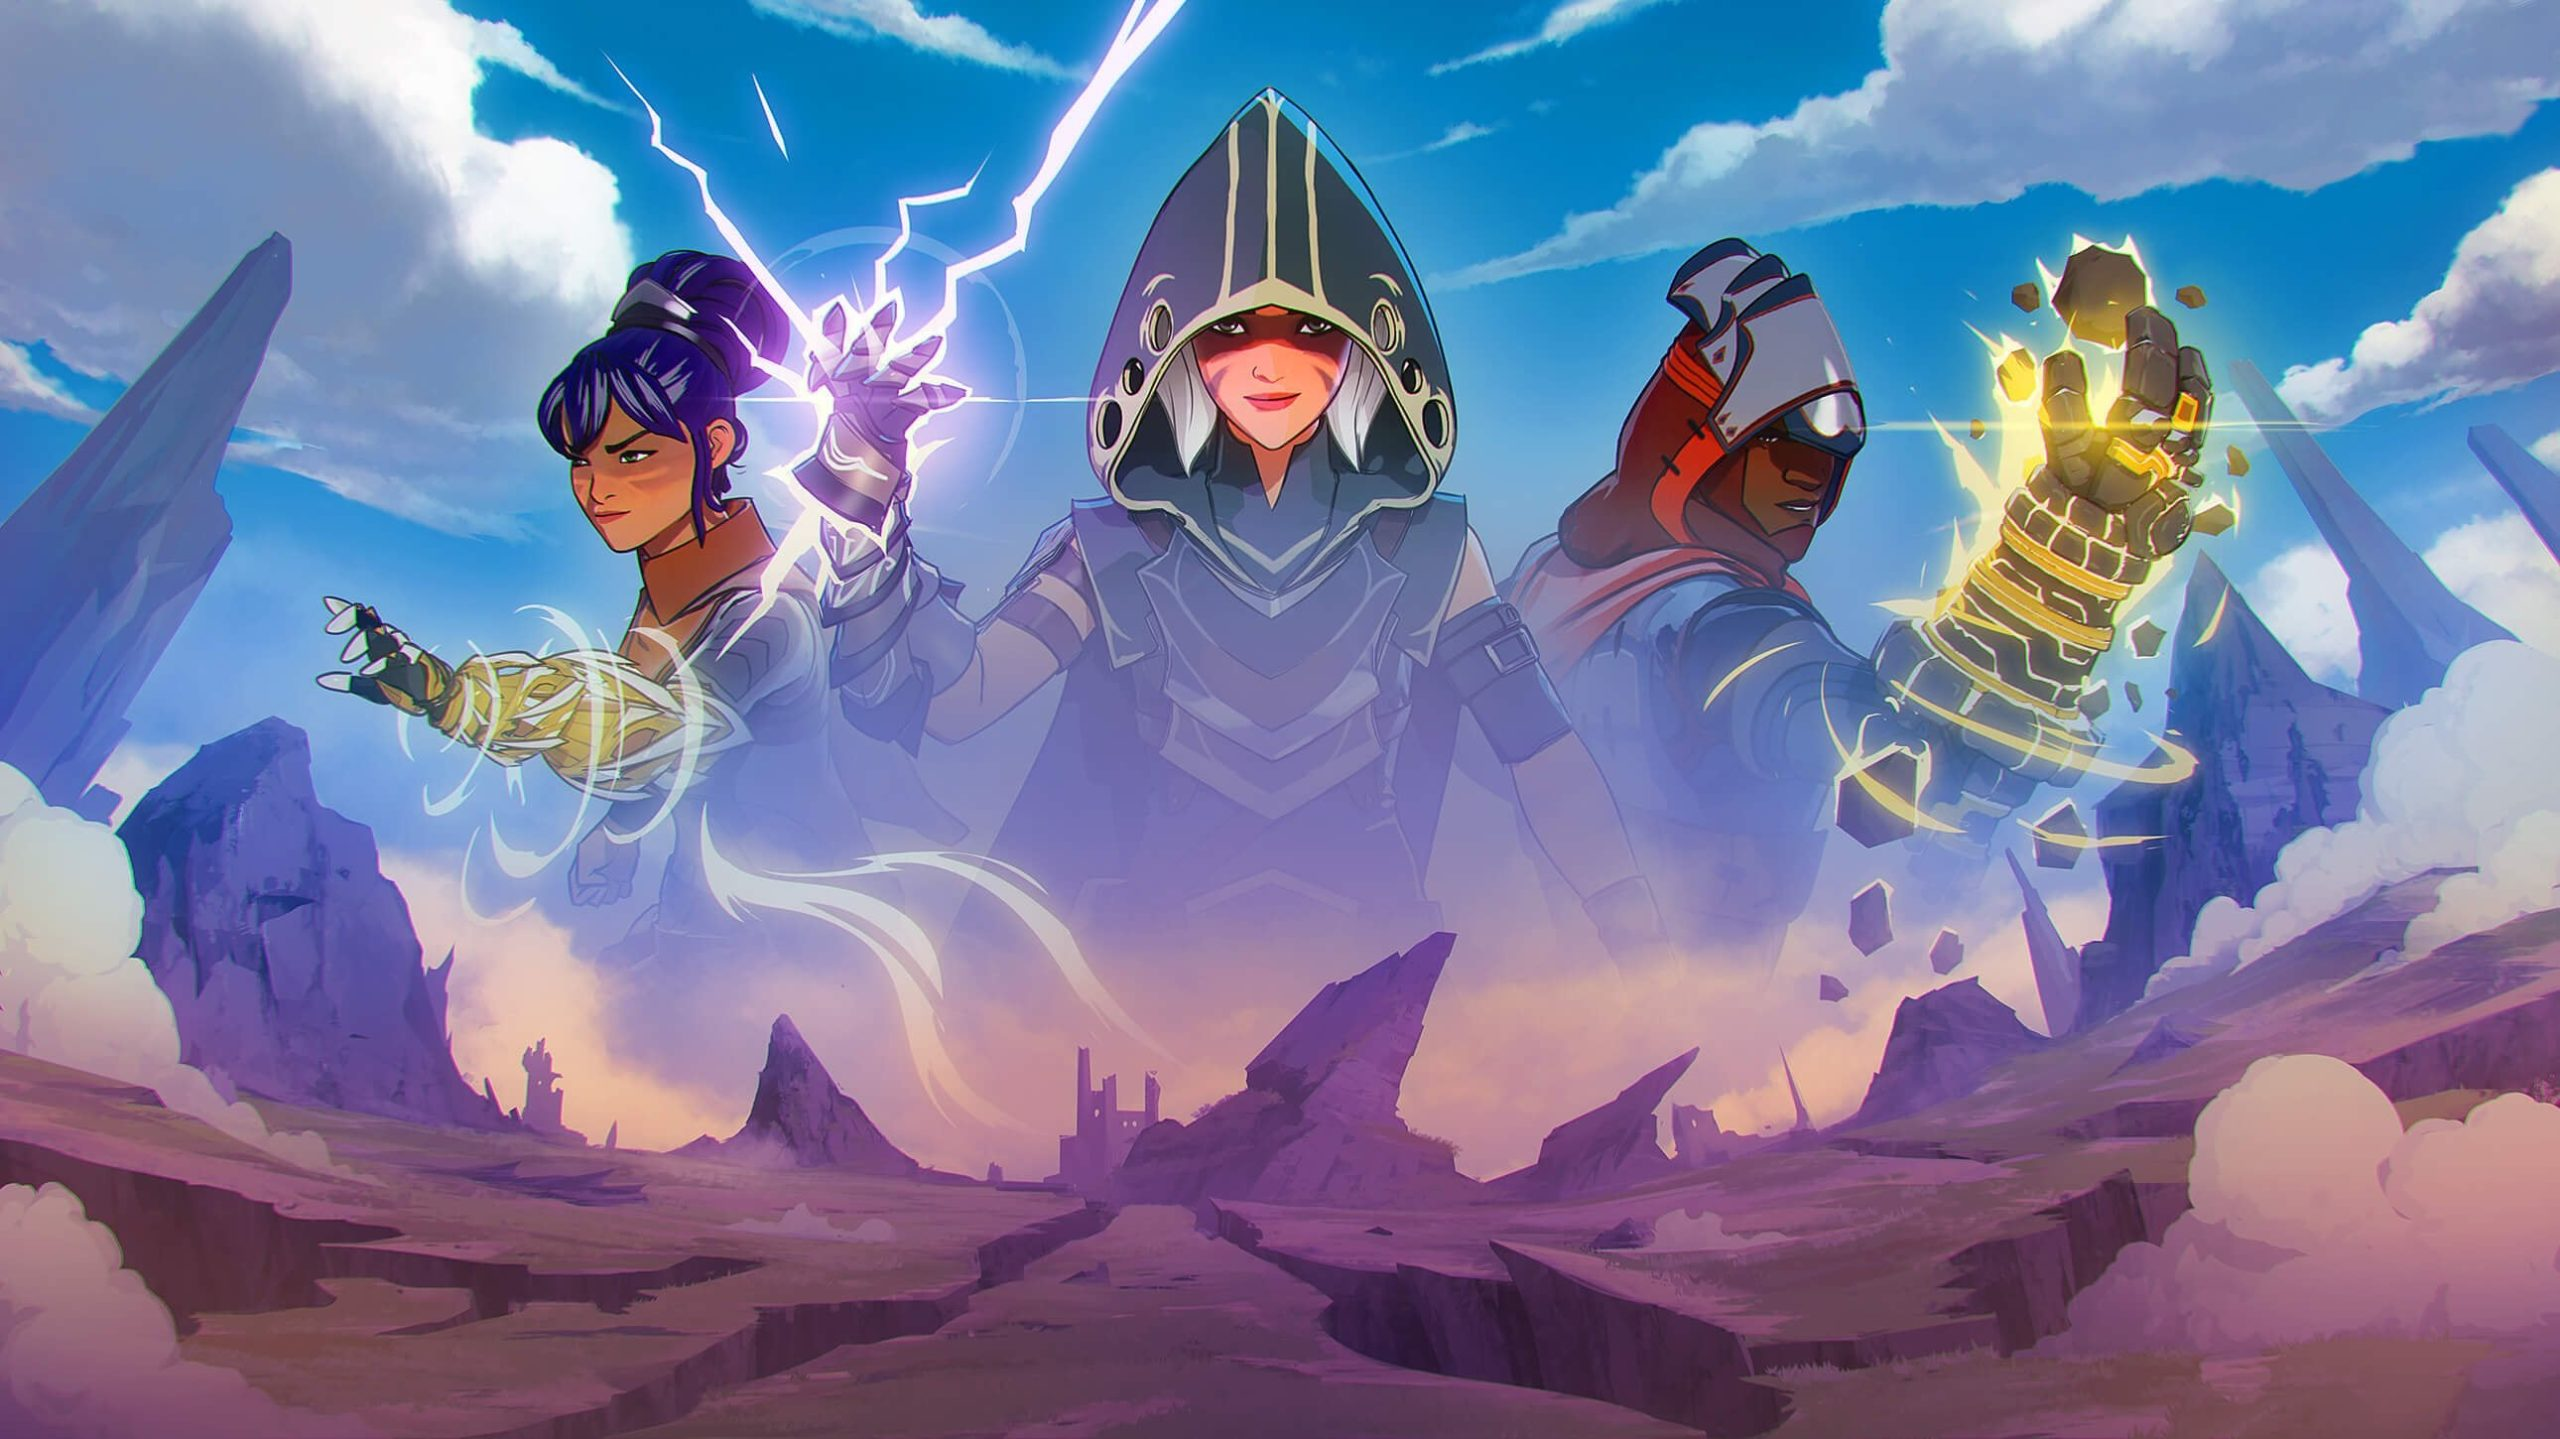 spellbreak full squad